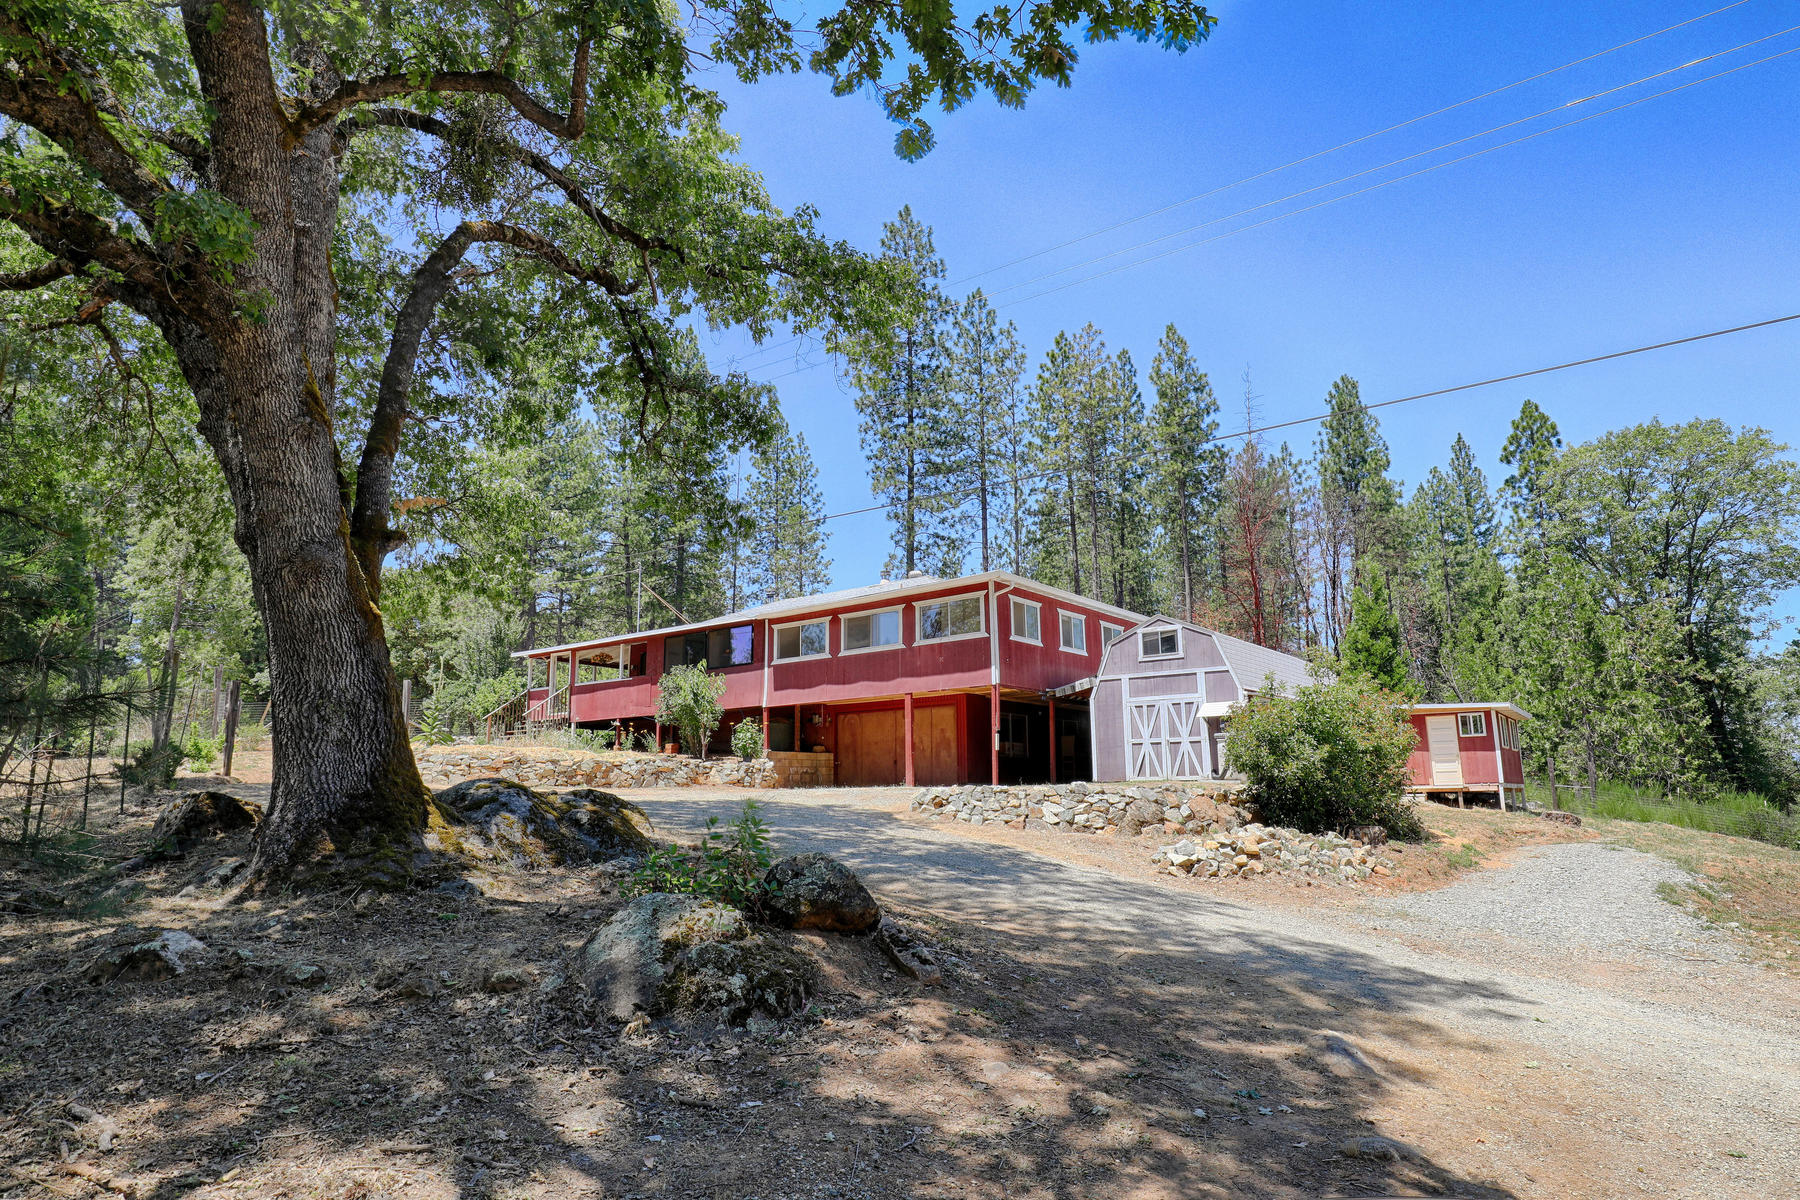 Single Family Homes for Active at 24590 Copel Lane, Nevada City, CA 95959 24590 Copel Lane Nevada City, California 95959 United States